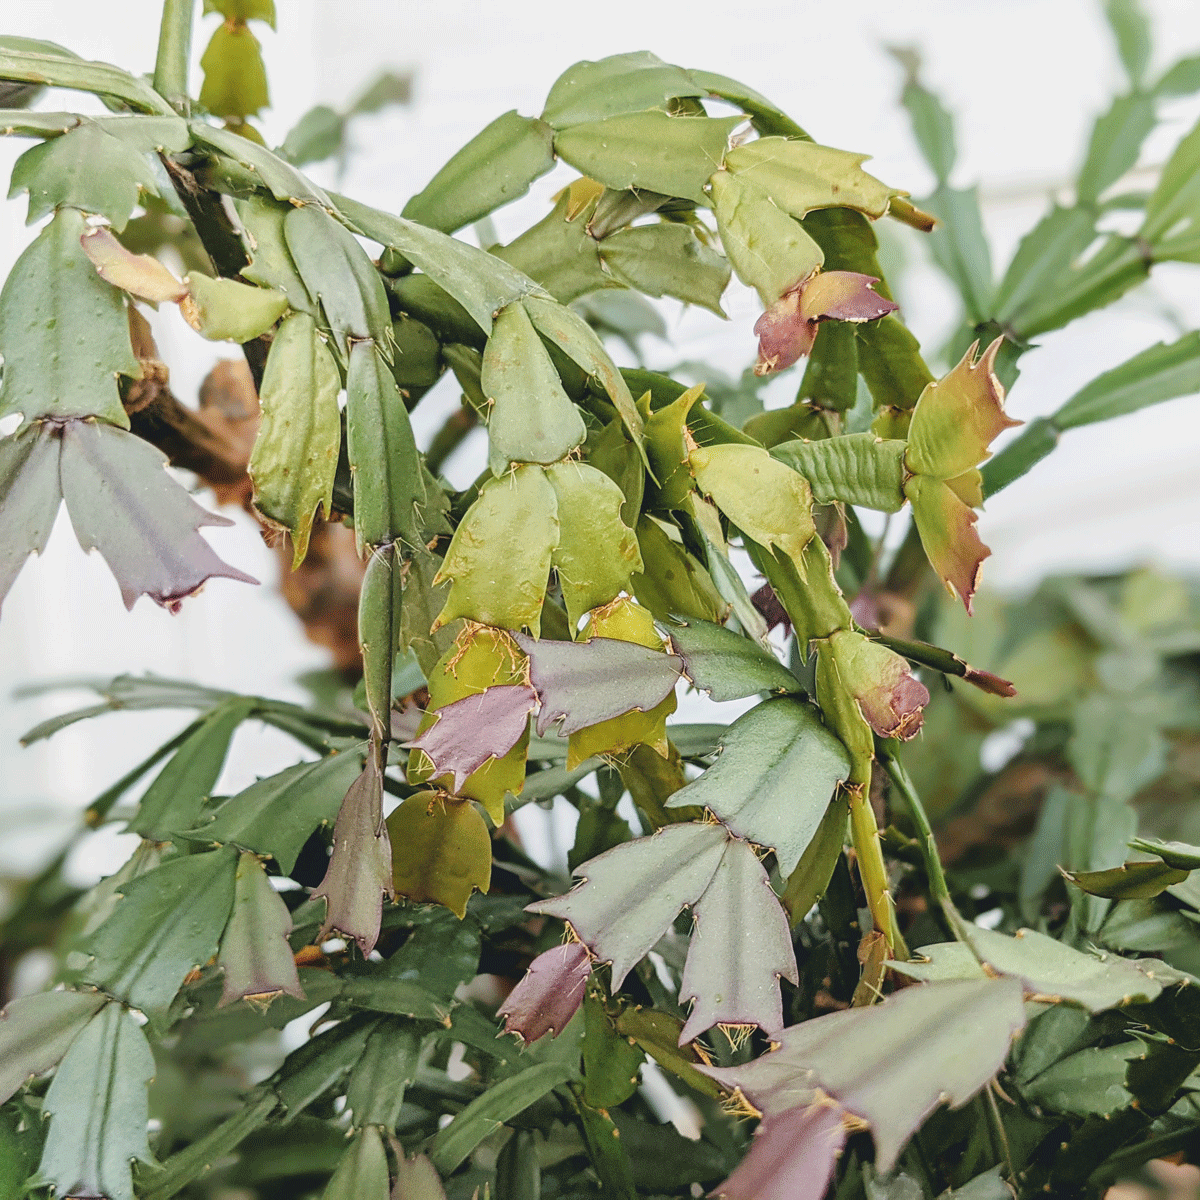 Propagating Christmas Cactus from Cuttings of a Healthy Plant